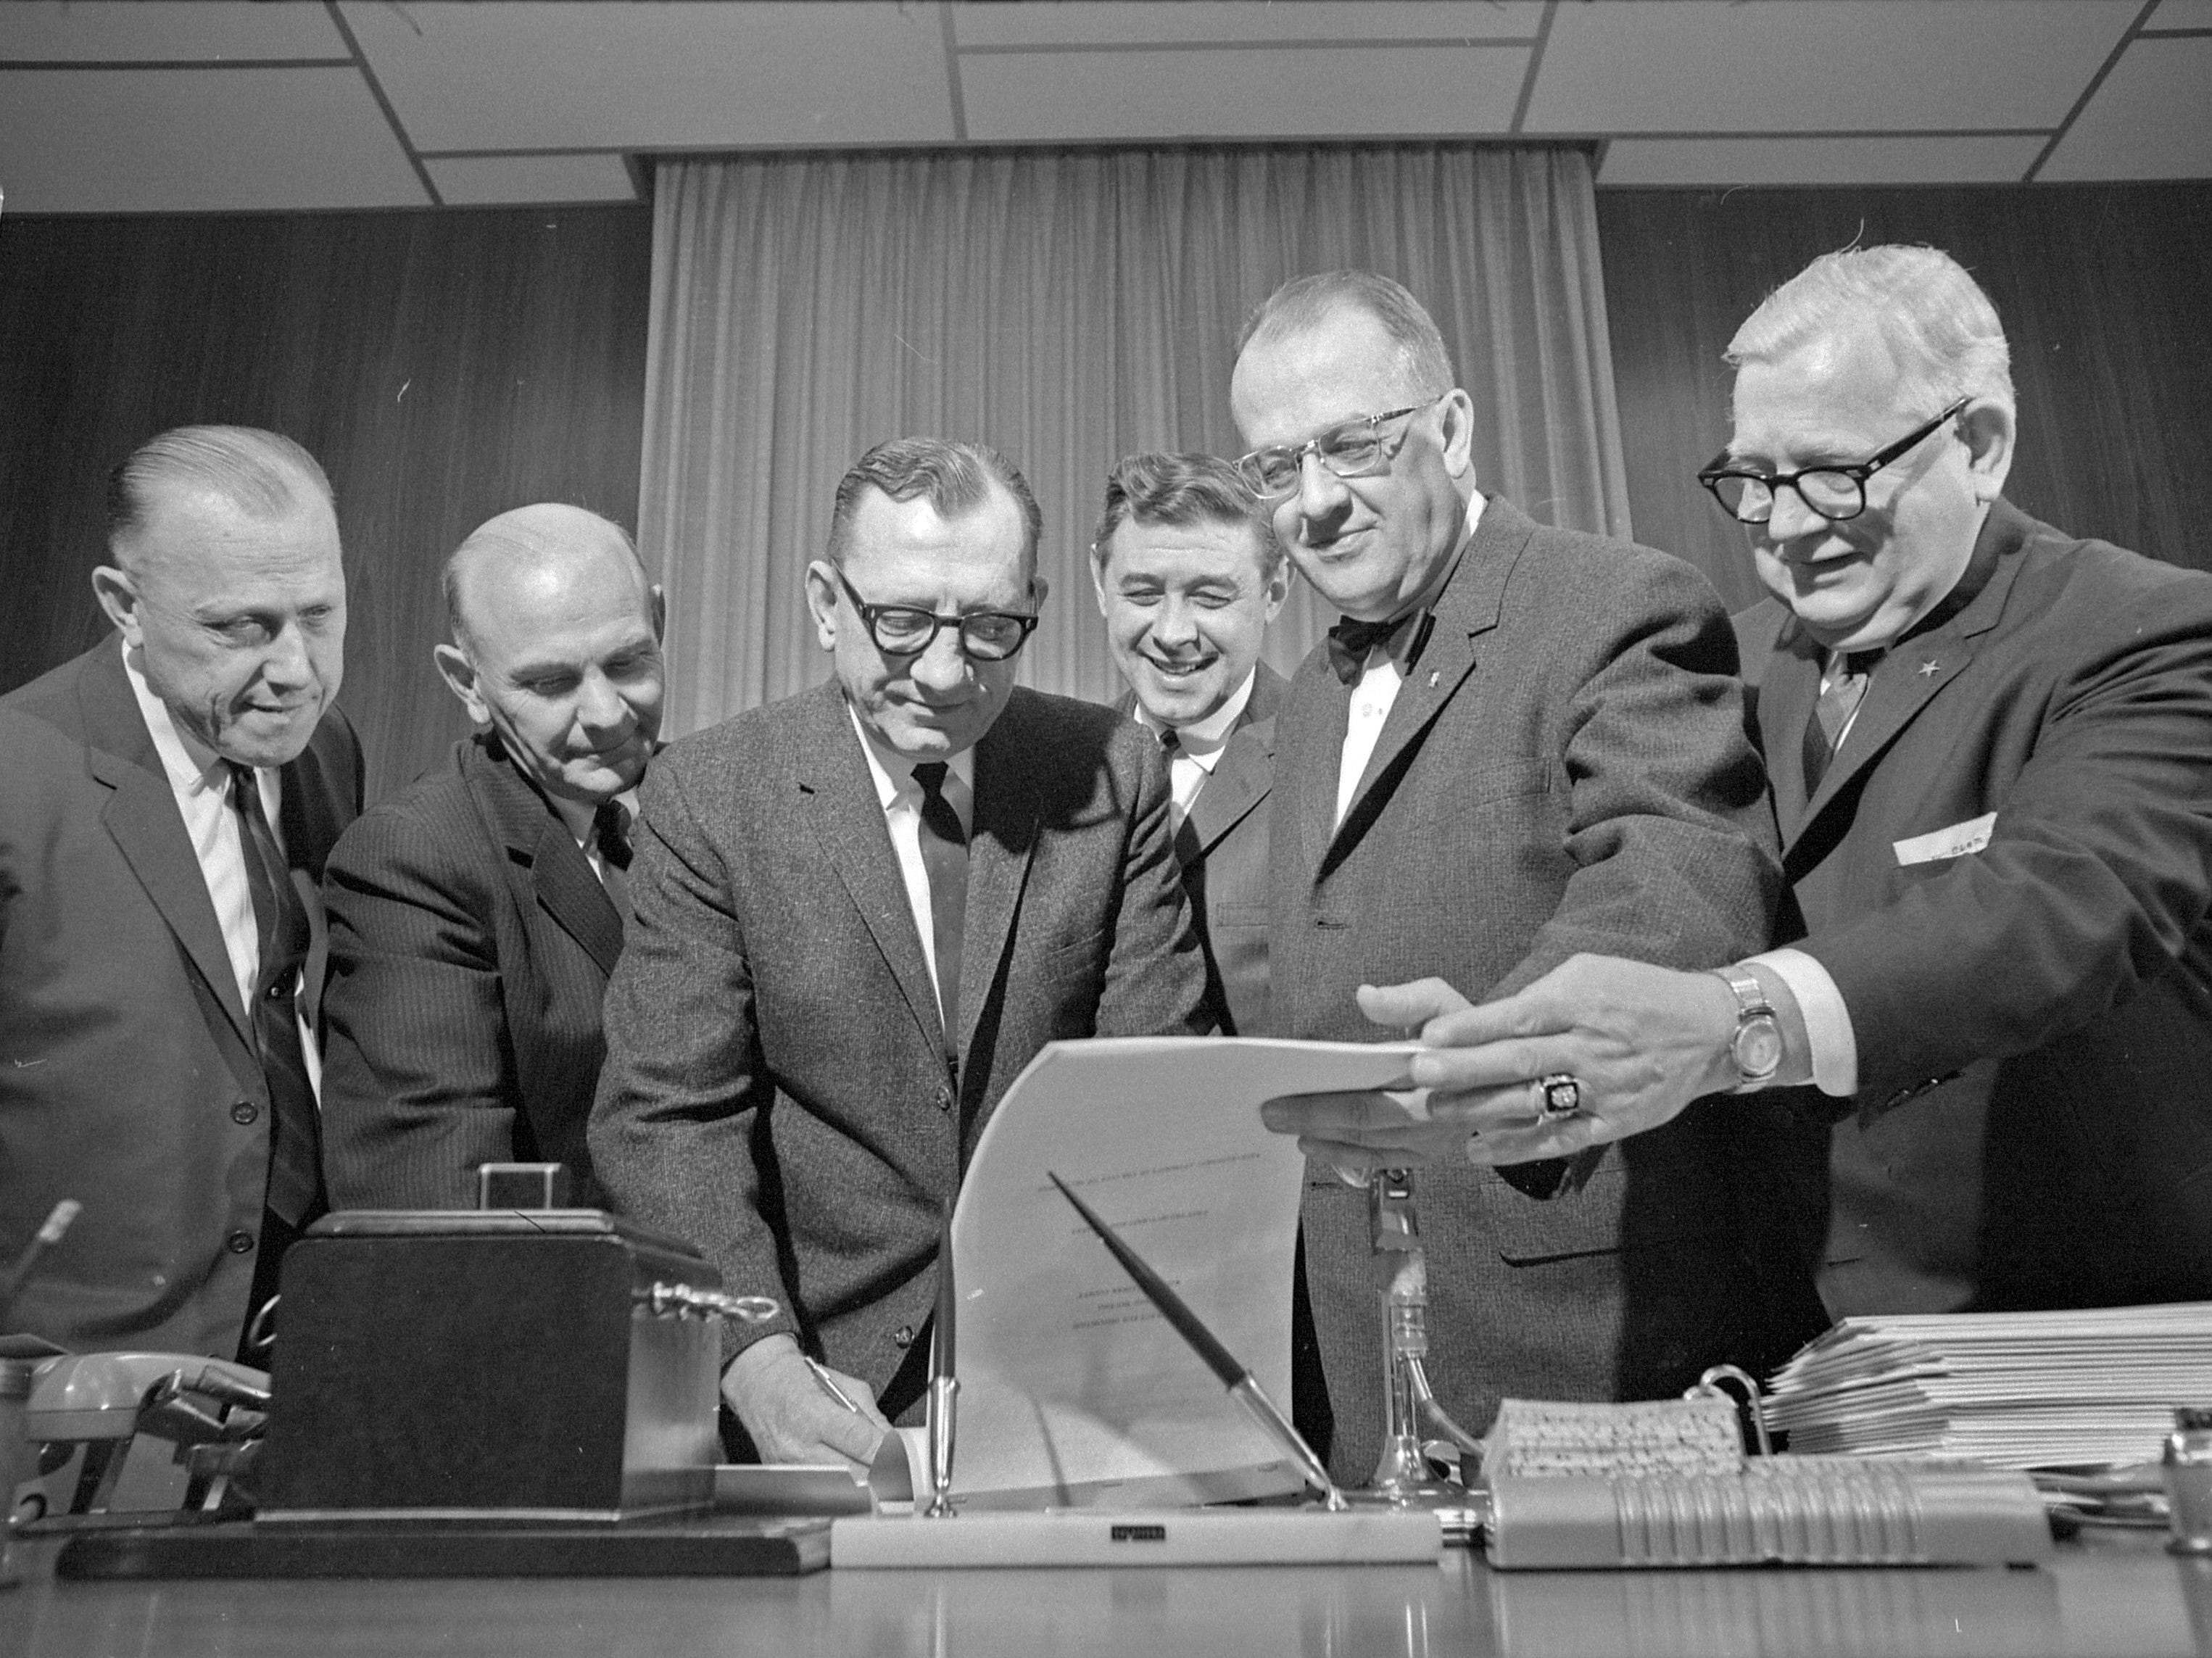 """35mm film negative of the signing of the contract for a proposed music hall, later to become the Performing Arts Center and now known as the Marcus Center for the Performing Arts. This photo was in the March 10th edition of the Journal with the caption """"A contract for sale of the site for the proposed music hall was signed Wednesday in city hall. The contract gives the county until December, 1966, to make actual purchase and take title to the land, now owned by the redevelopment authority. Sale price has been set at $514,000. Participating in the ceremony were (from left) Ald. Martin E. Schreiber, common council president; Eugene Grobschmidt, county board chairman, Ald. Robert L. Sulkowski, vice-chariman of the city redevelopment authority; Mayor Maier; Richard W.E. Perrin, director of city development, and County Clerk Clemens Michalski. The site is on the east side of the Milwaukee river and is bordered by E. Kilbourn av. and E. State and N. Water sts.""""  Date is 3/10/1965.  PAC  transparency folder #65653"""